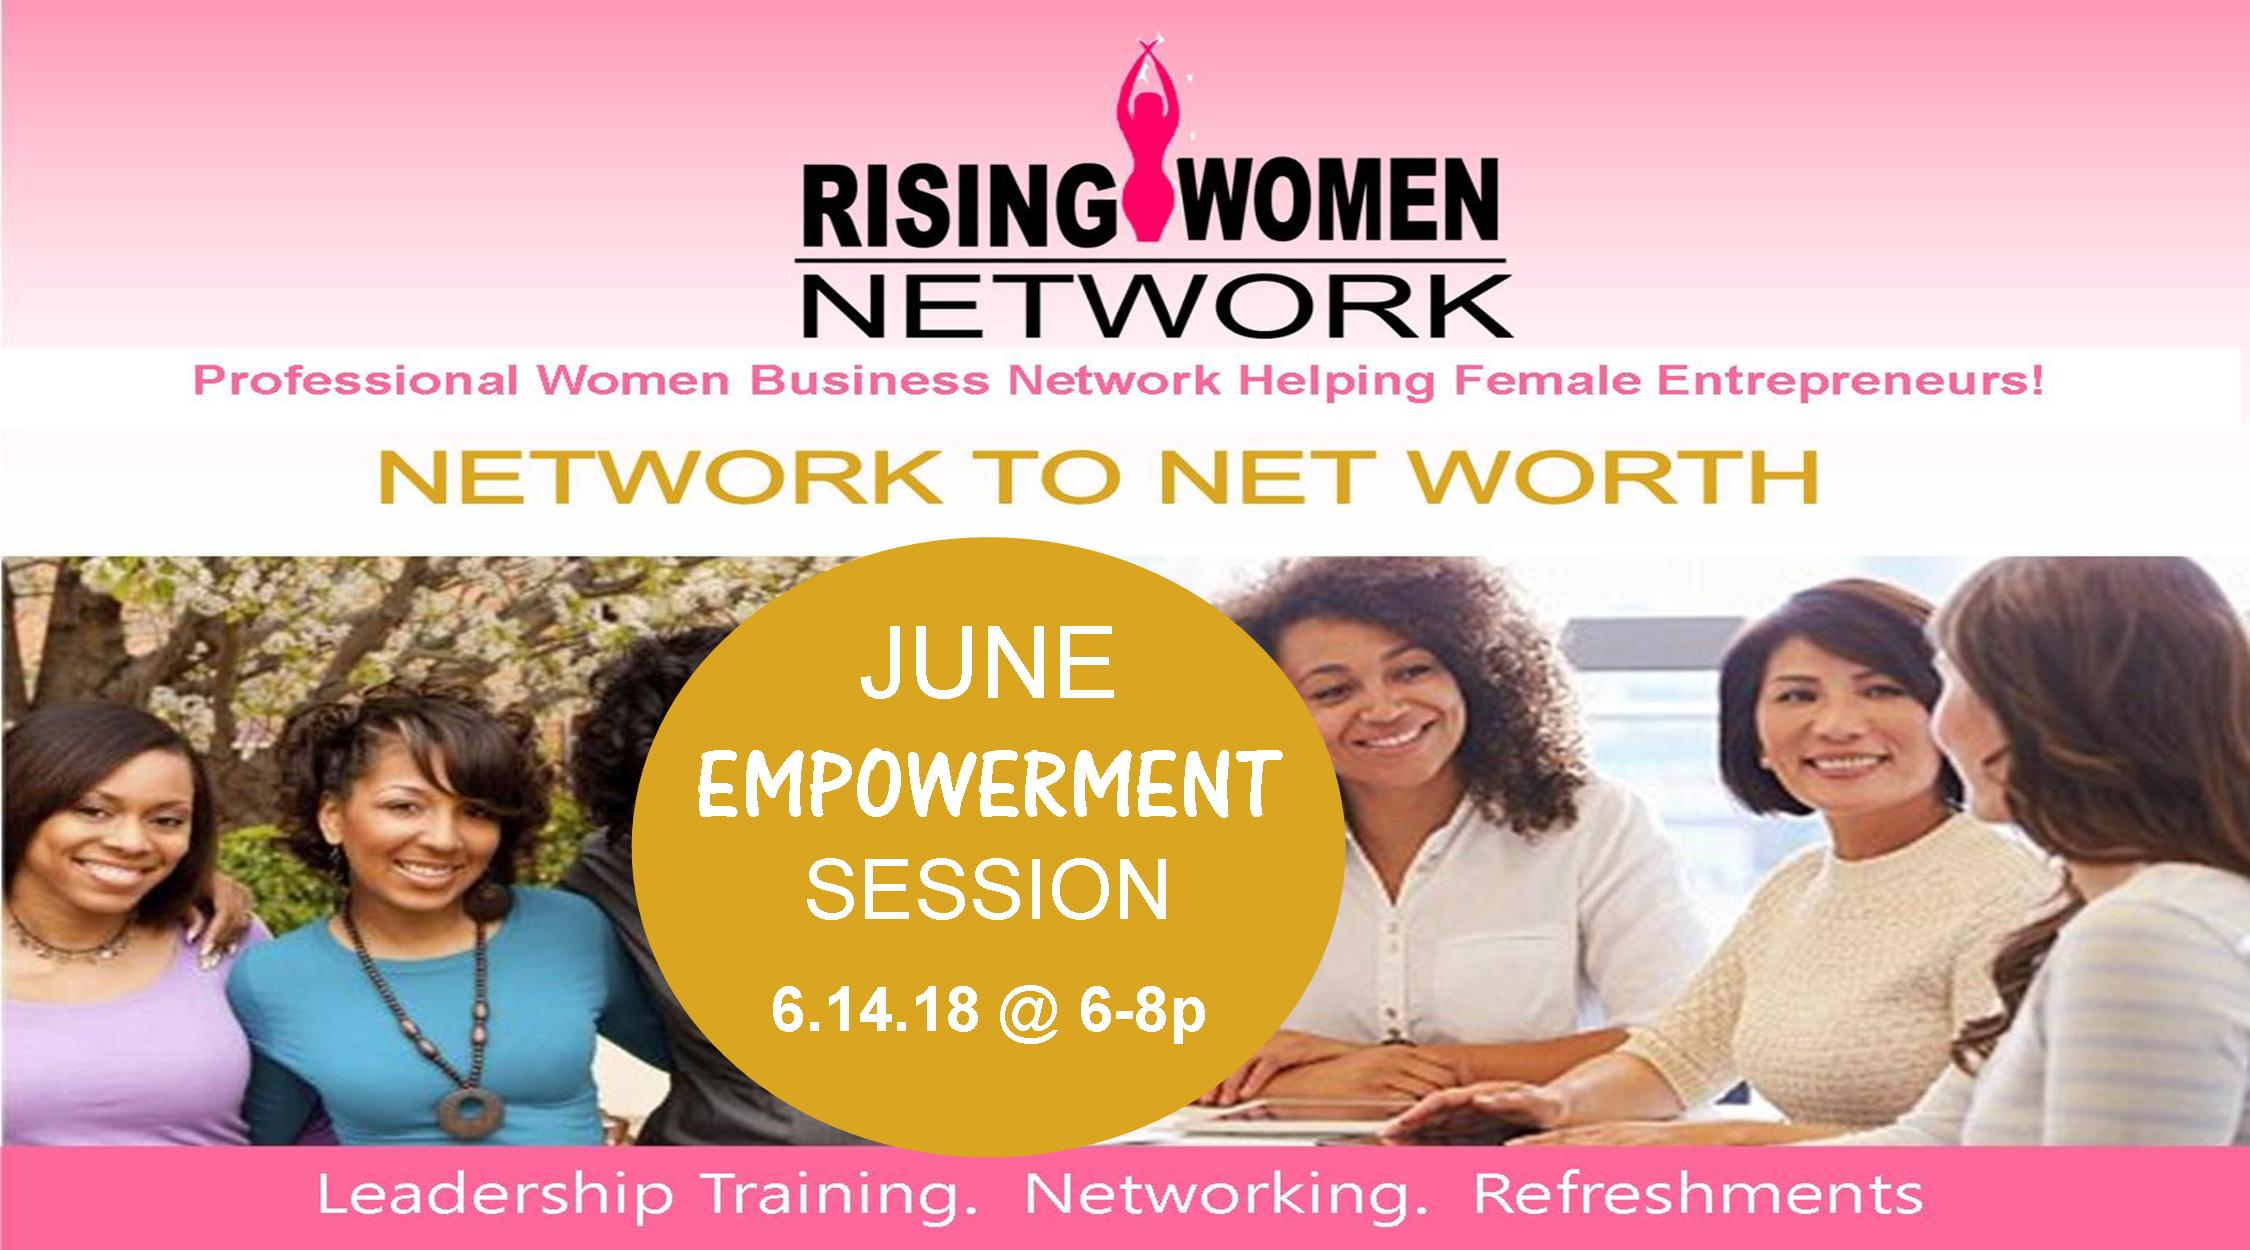 Join Our June Empowerment Session!